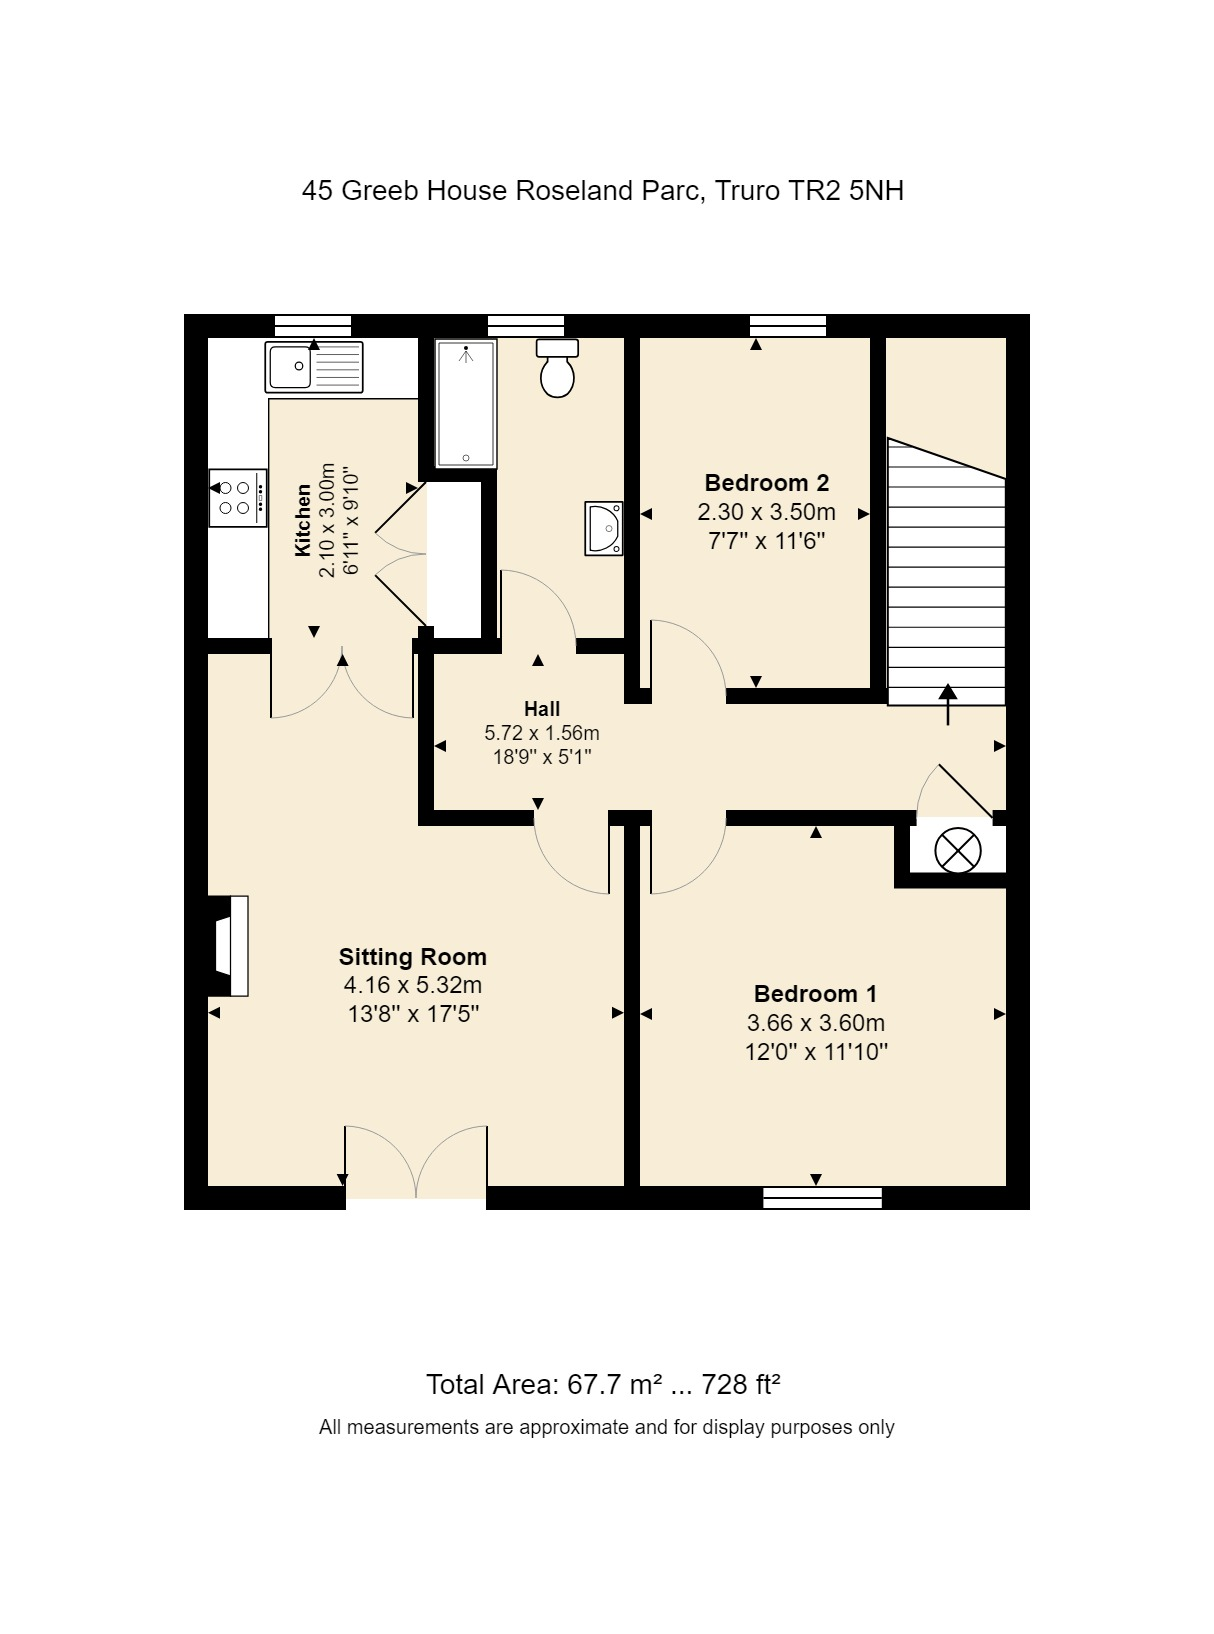 45 Greeb House Floorplan